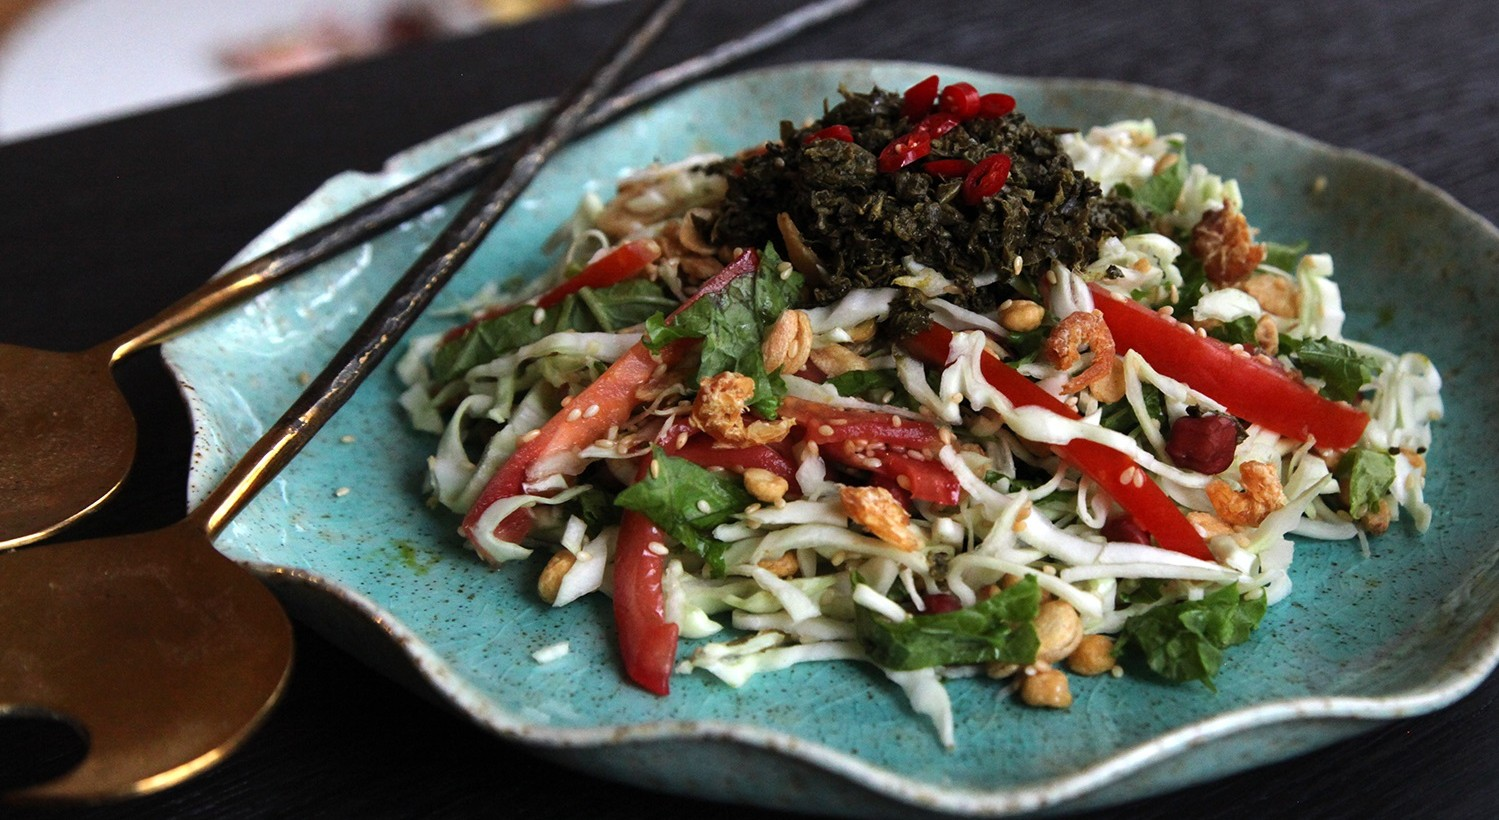 The homemade Burmese tea leaf salad, made from products from Lin Asian Market. (Jenny Luk/Special to The News)